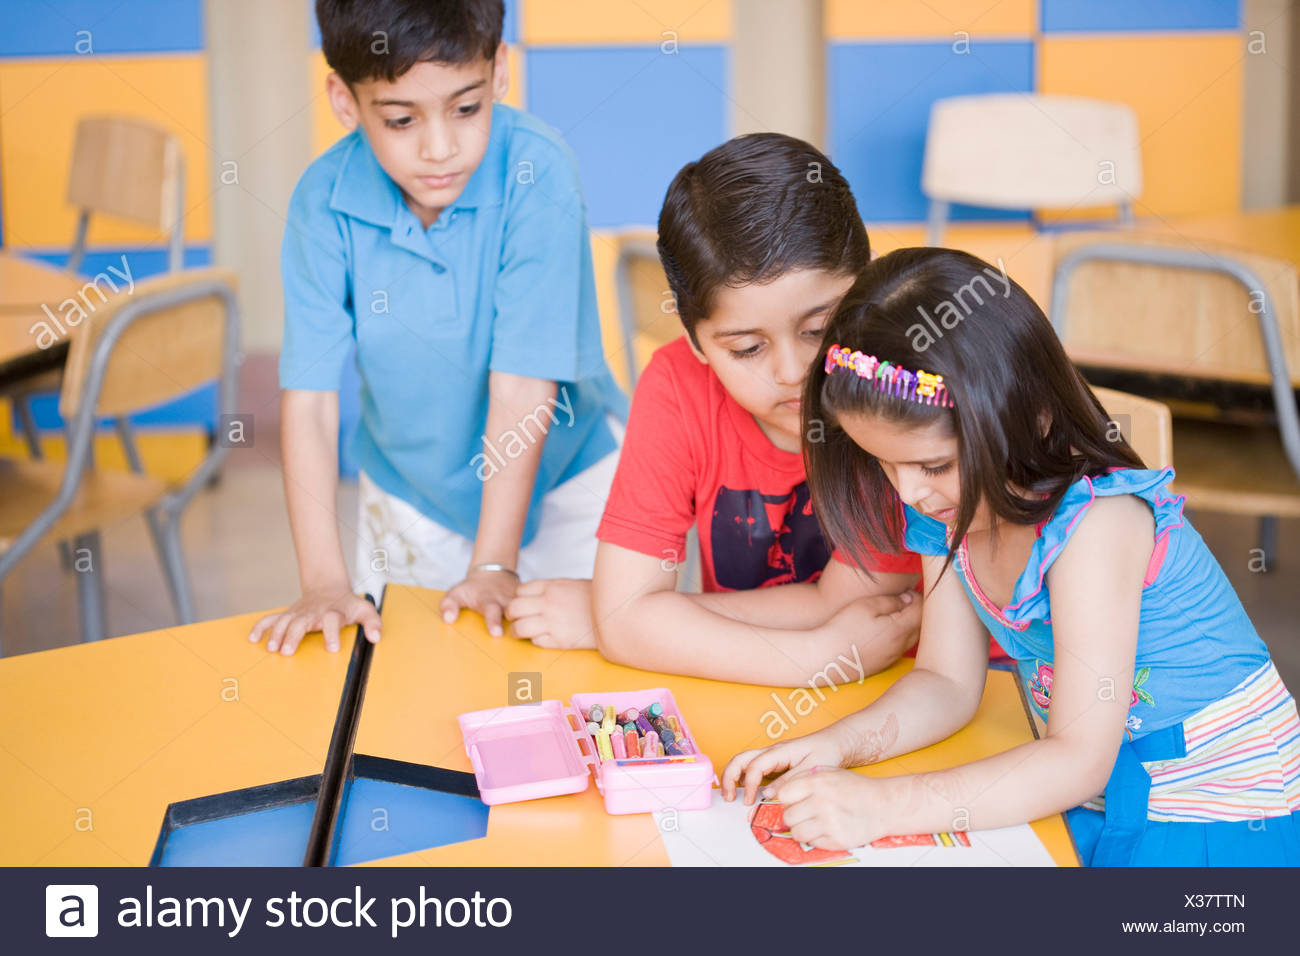 side profile of a girl drawing on a sheet of paper with two boys